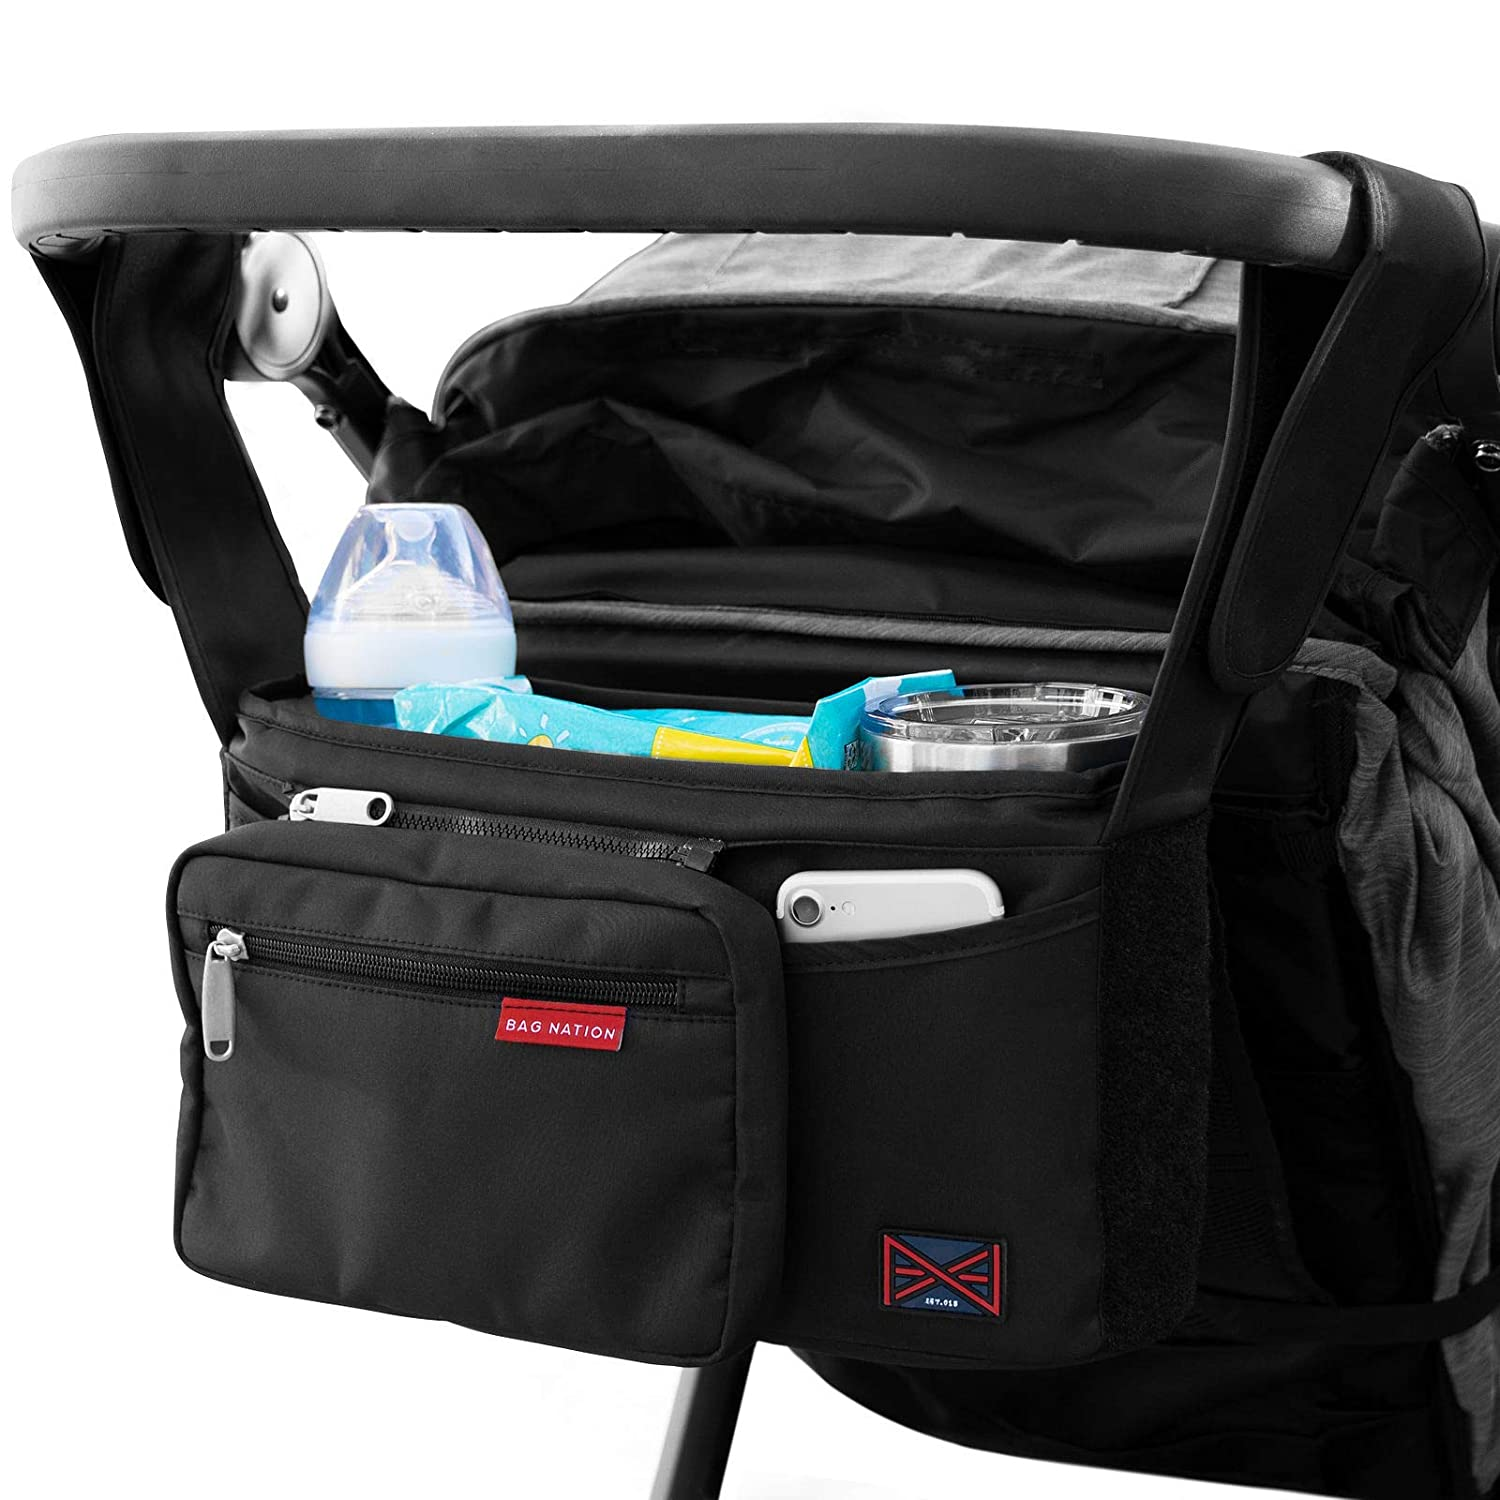 Bag Nation Universal Stroller Organizer Caddy Featuring Cup Holders, Large Main Pocket Compatible with Uppababy, Baby Jogger, Britax, Bugaboo, BOB, Umbrella and Pet Stroller - Black